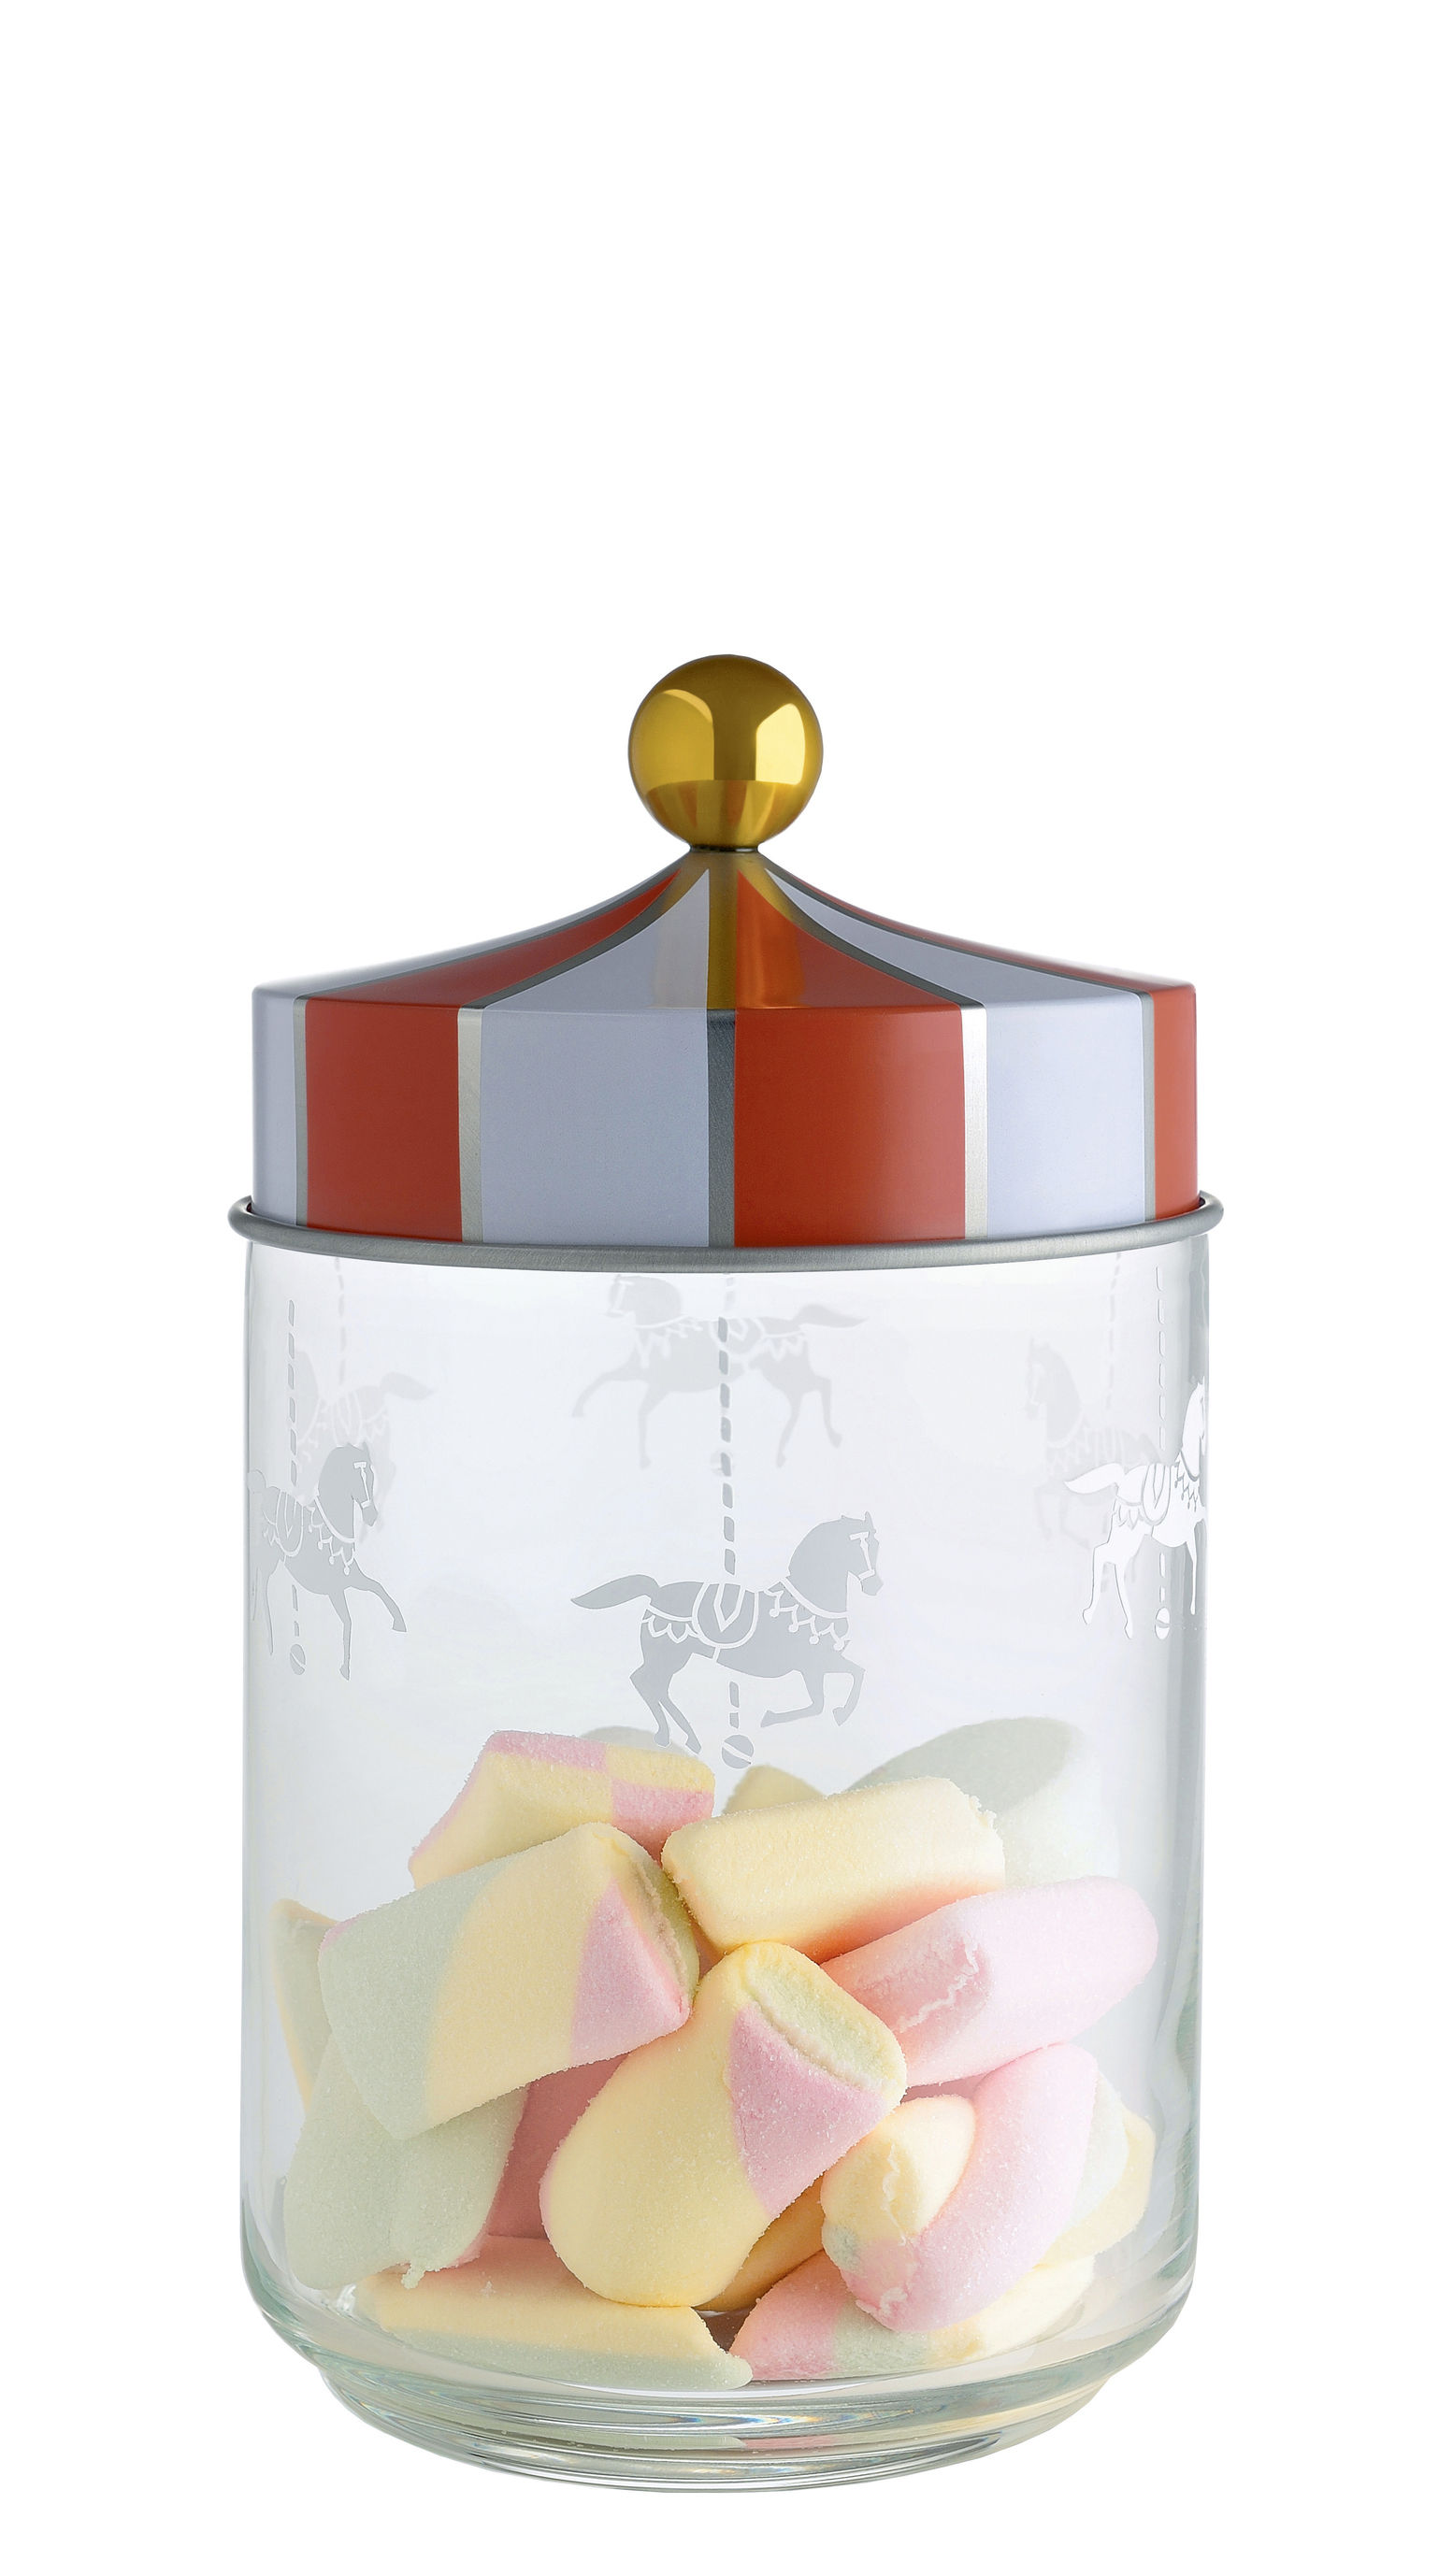 Kitchenware - Kitchen Storage Jars - Circus Airtight jar - 100 cl by Alessi - 100 cl / Red & white - Tinplate, Verre sérigraphié